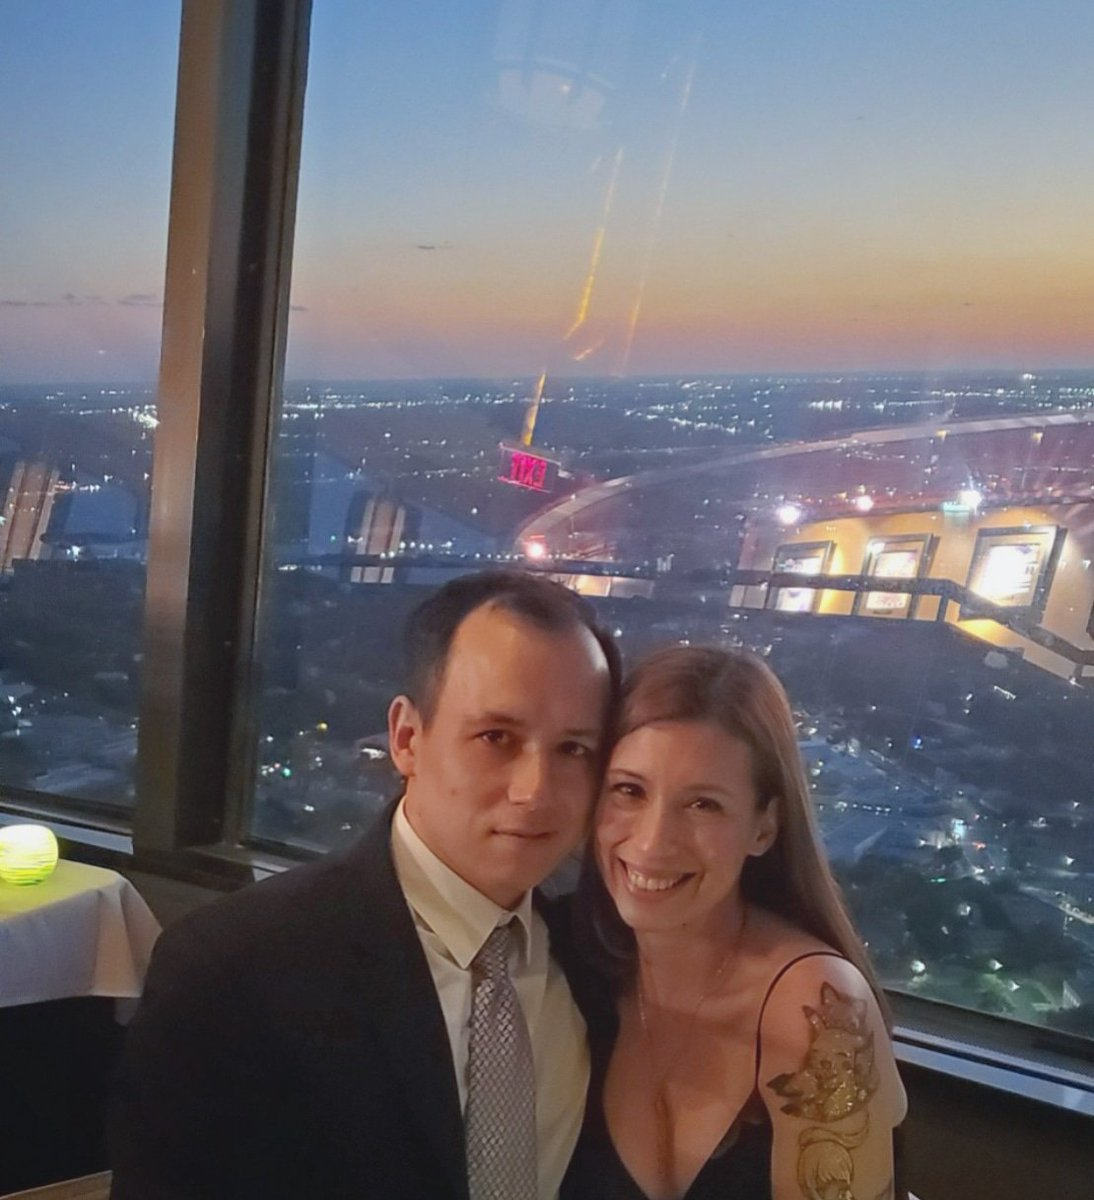 Just out celebrating how much we love each other is all. Thanks @ohclauds for recommending the Tower to us. We had a lot of fun  experiencing it for the first time together ❤   #sosweetitssickening #sorrynotsorry #canthelpfallinginlove #toweroftheamericas #thingstodoinsanantonio https://t.co/DXsAJWicL2